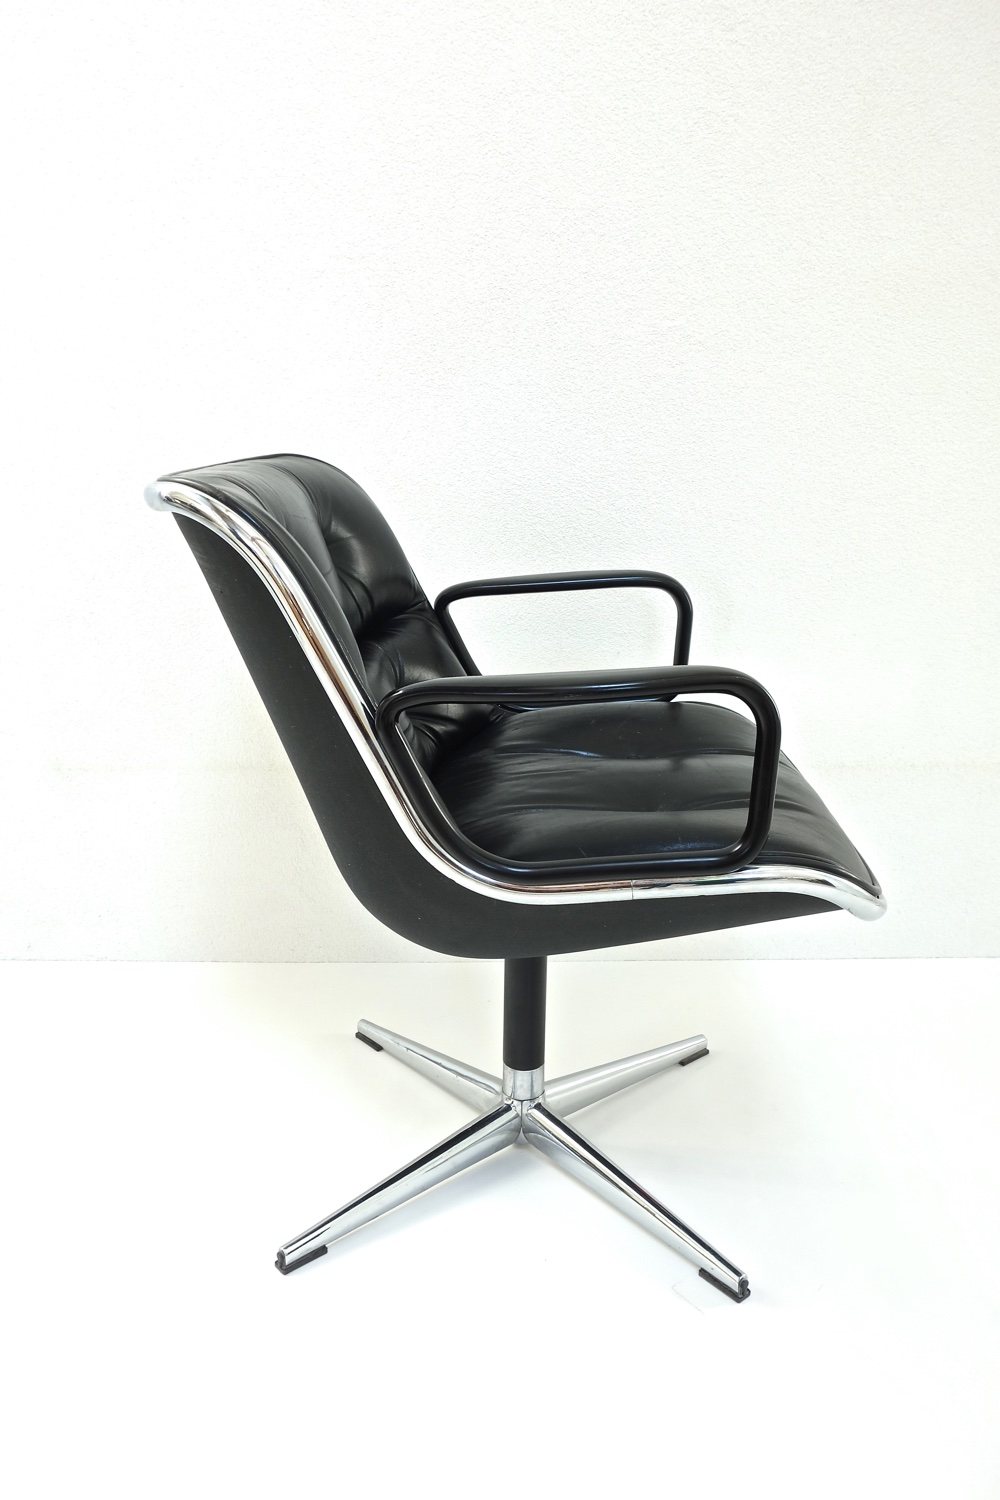 fauteuil knoll charles pollock 1960 vendu warehouse furniture. Black Bedroom Furniture Sets. Home Design Ideas